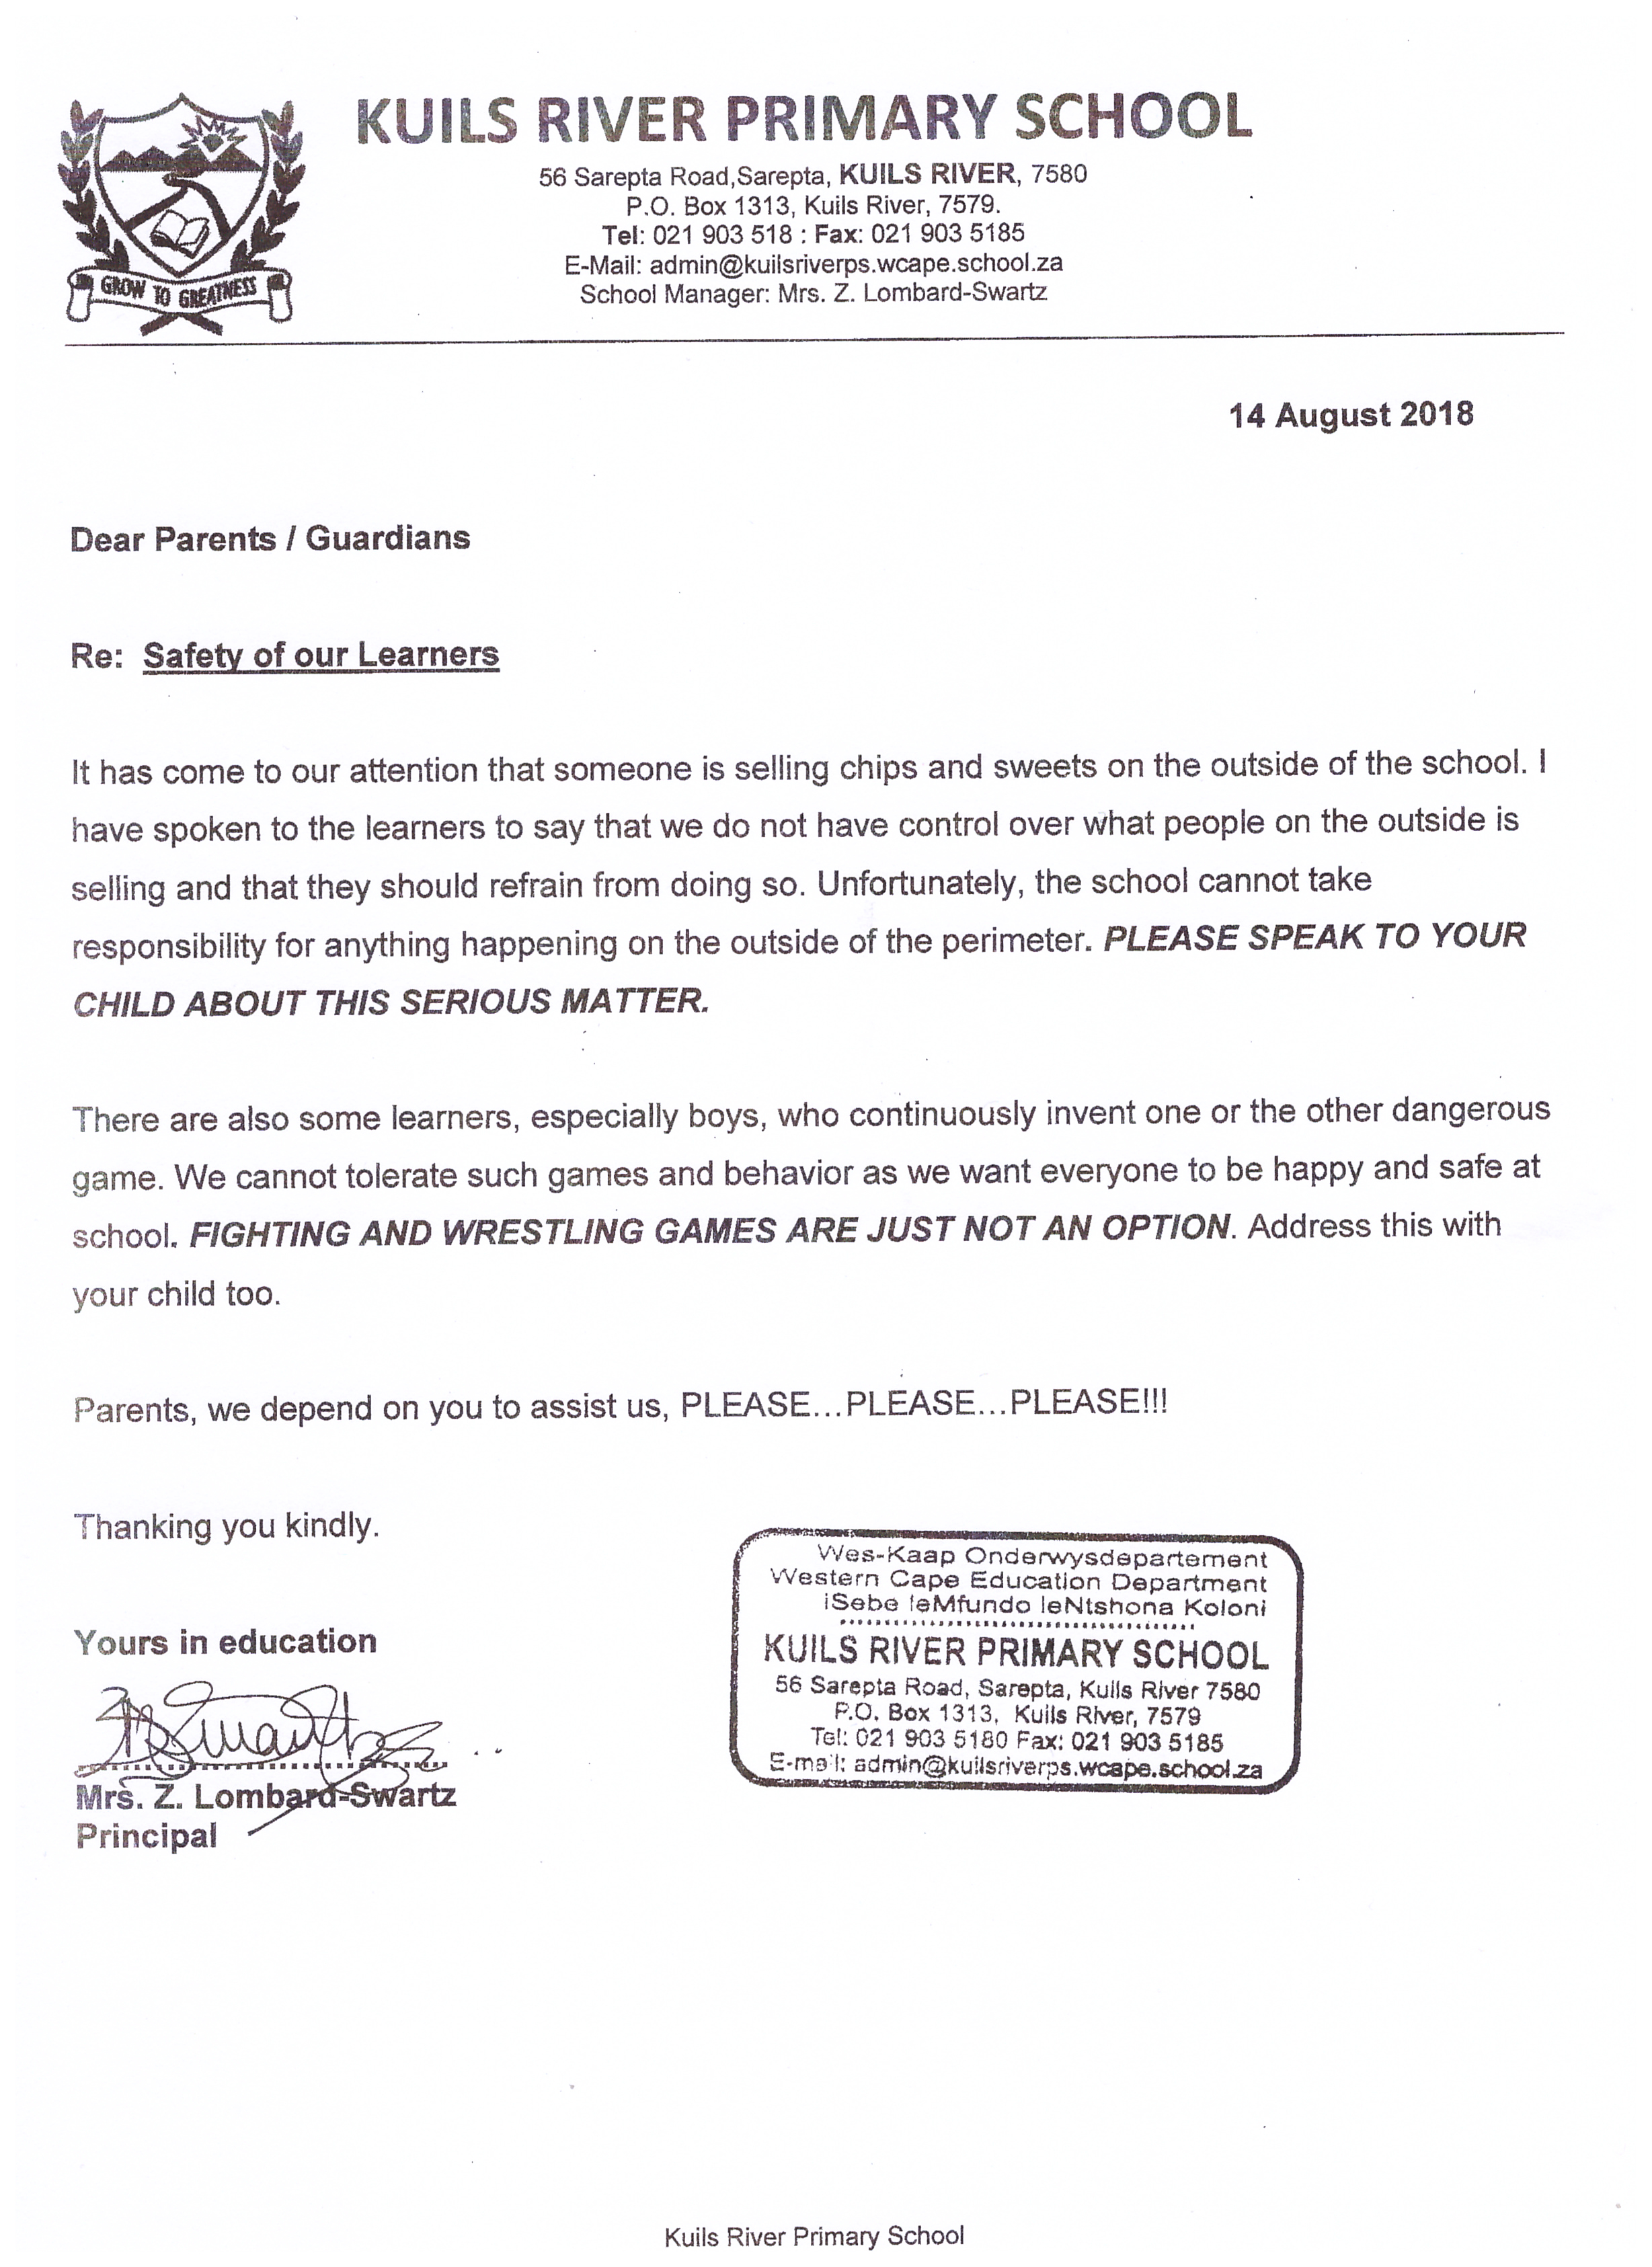 important-letter-safety-of-our-learners